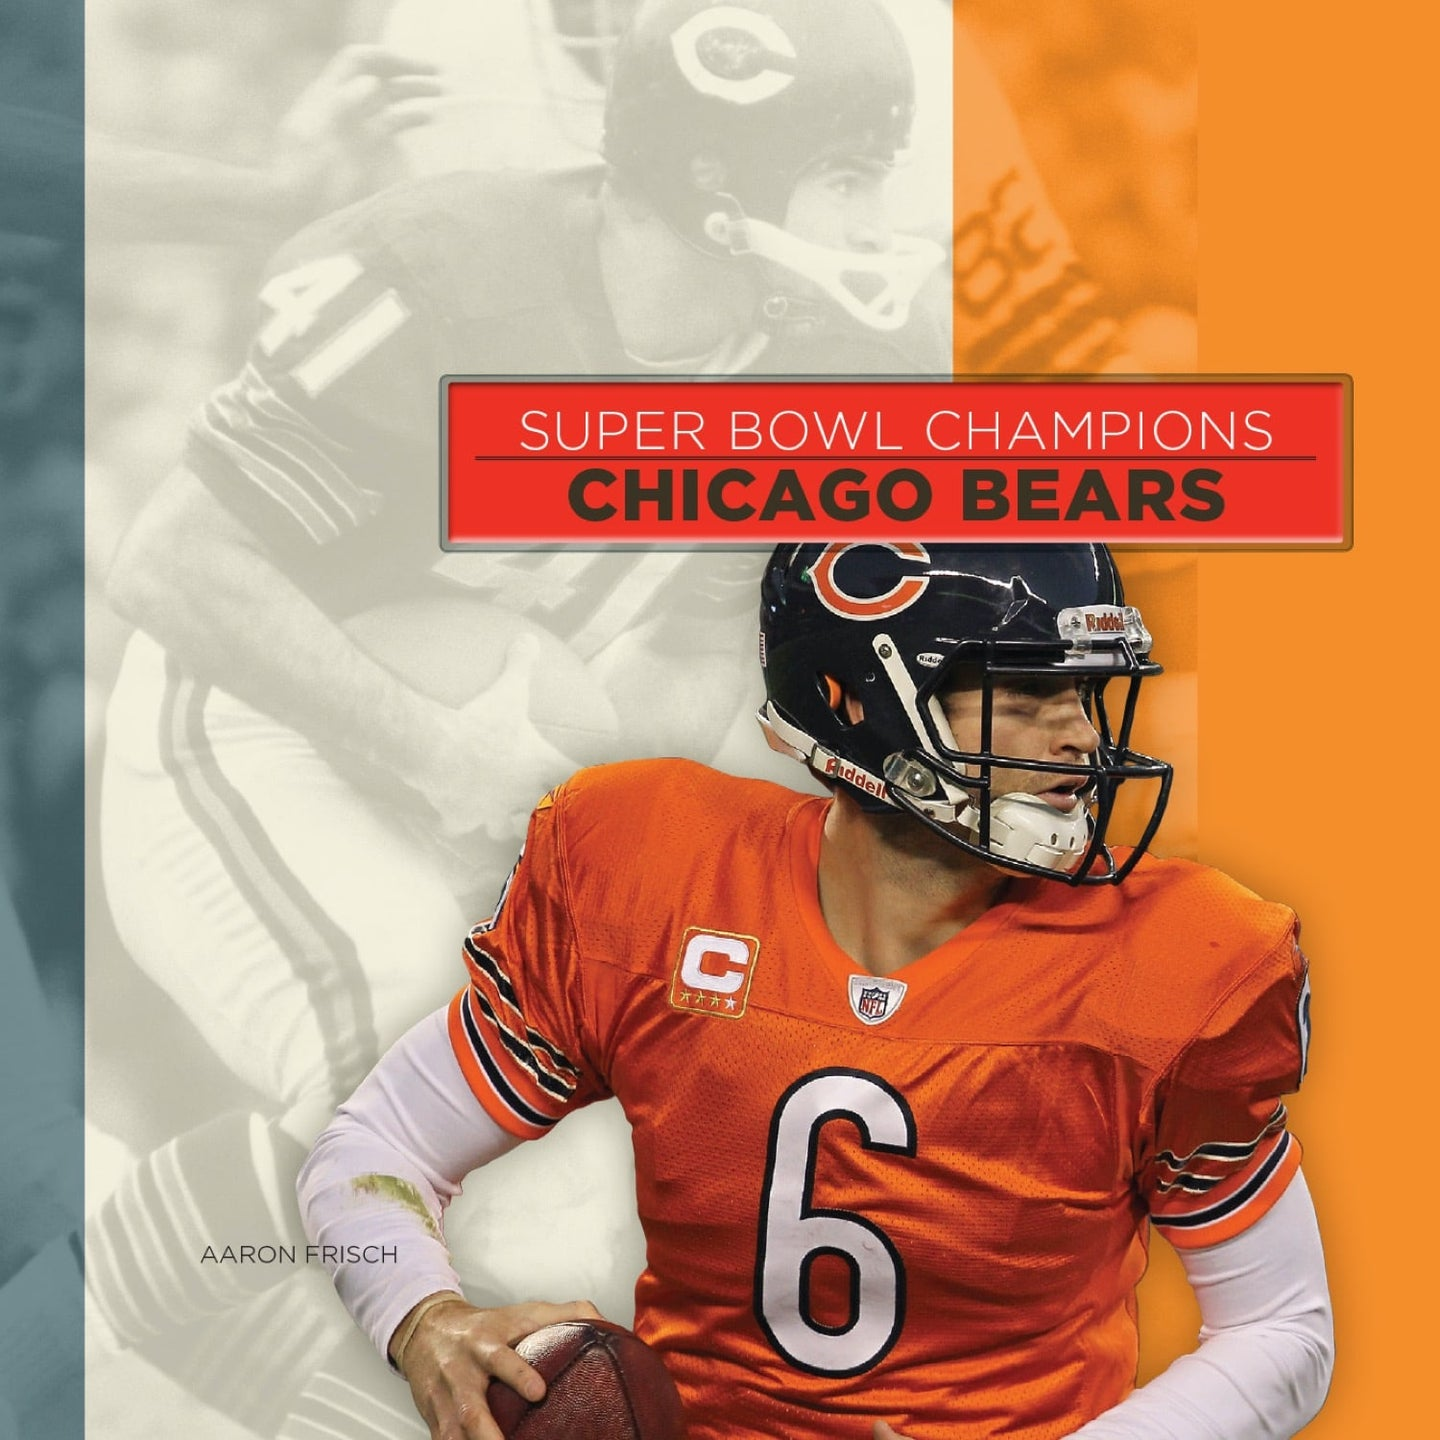 Super Bowl Champions: Chicago Bears